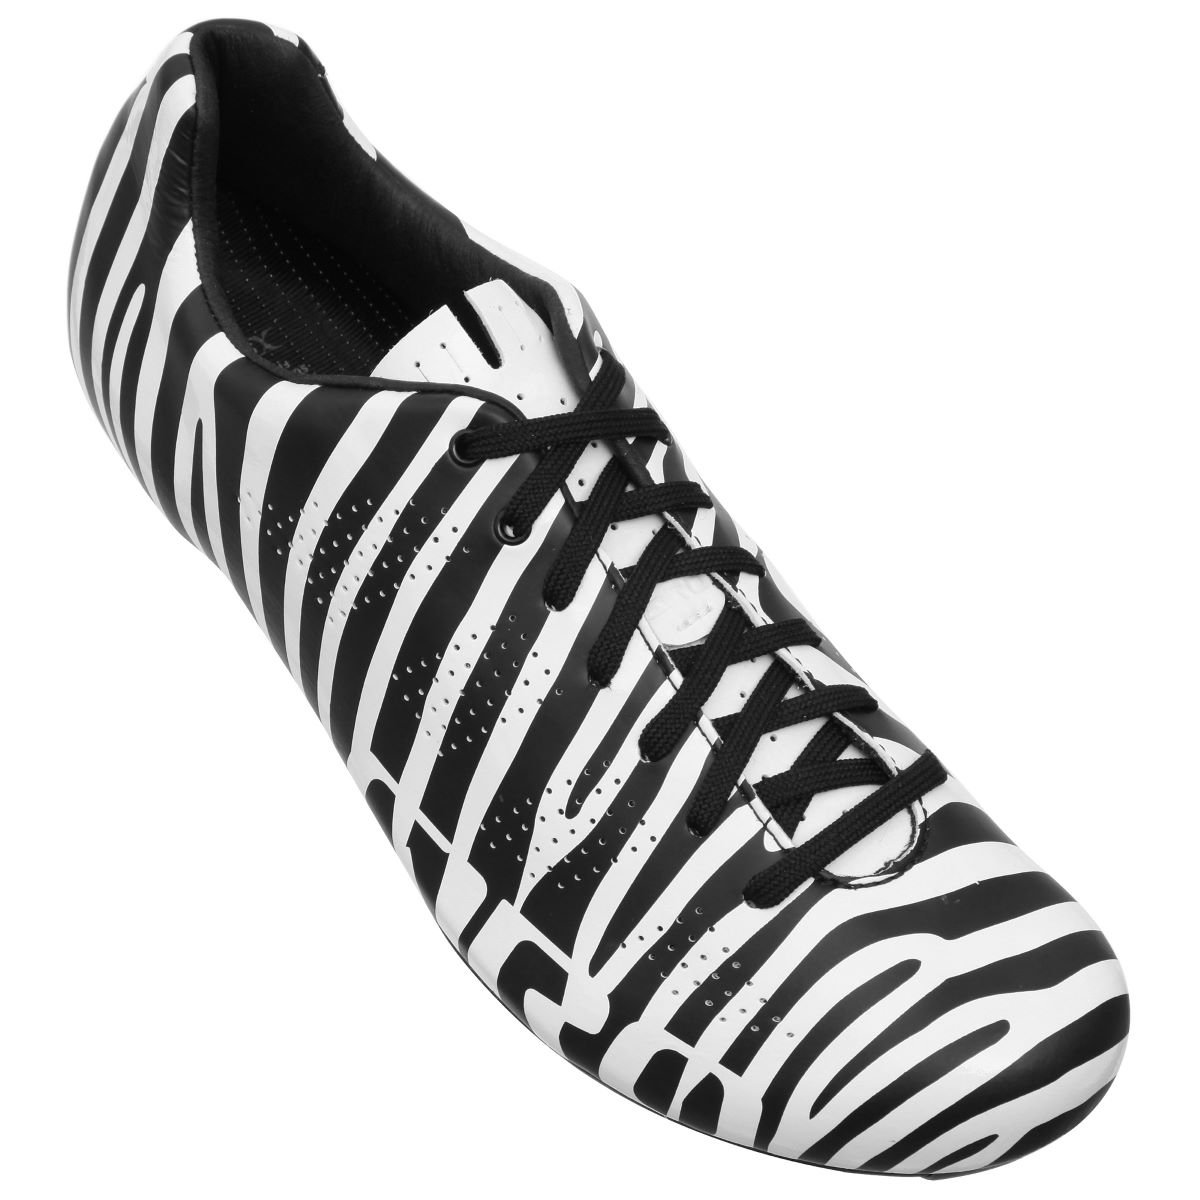 Giro Giro Zebra Empire Road Shoes   Cycling Shoes